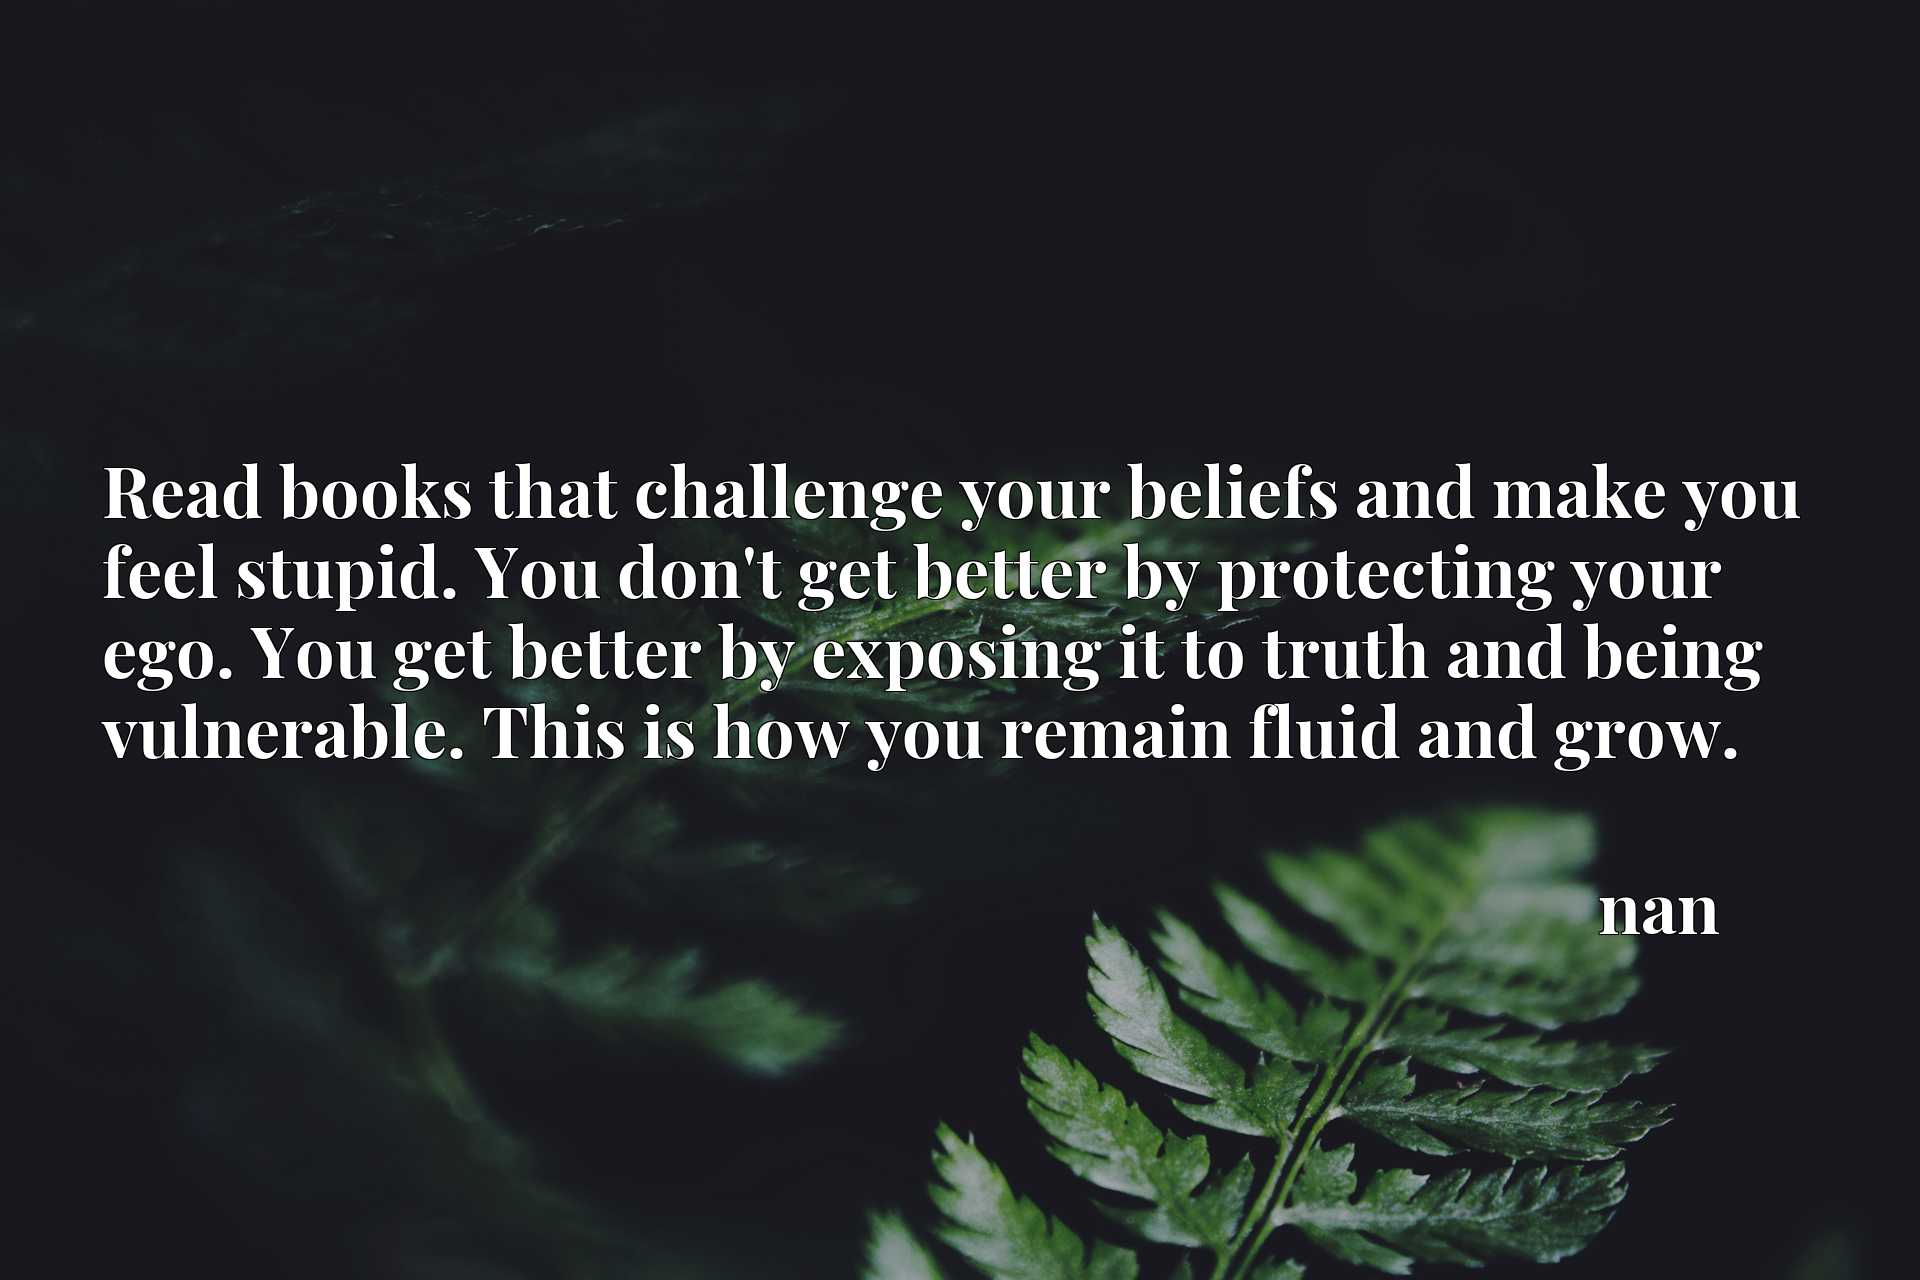 Read books that challenge your beliefs and make you feel stupid. You don't get better by protecting your ego. You get better by exposing it to truth and being vulnerable. This is how you remain fluid and grow.